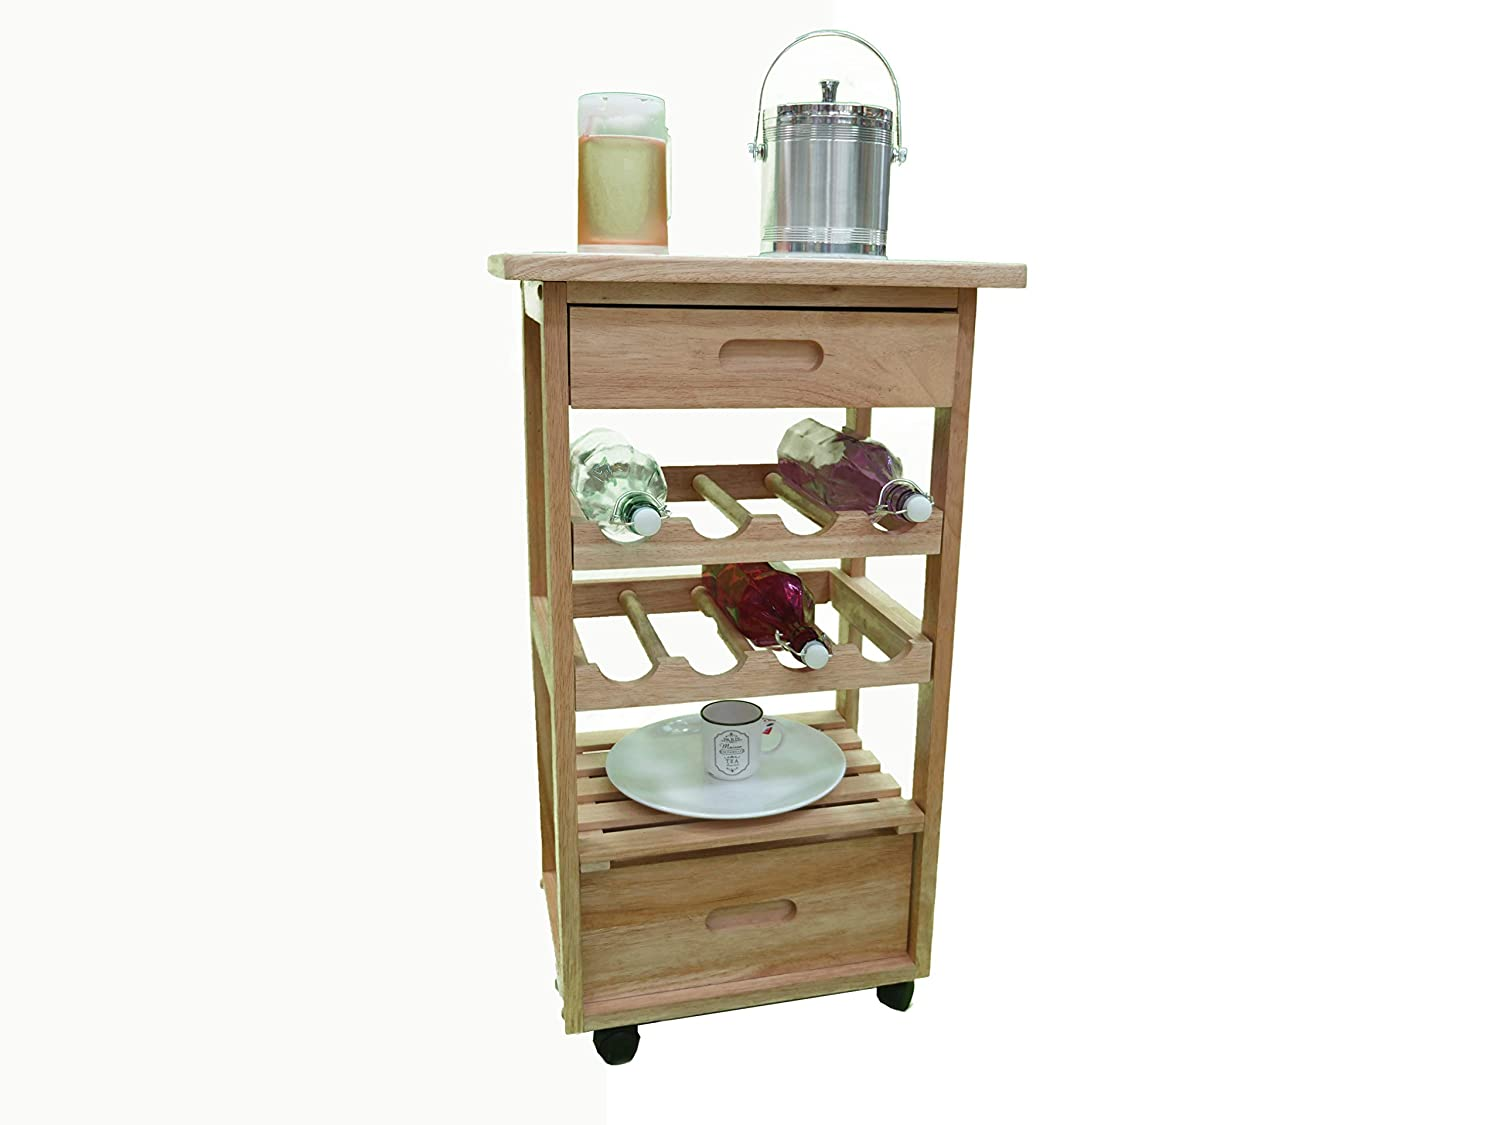 Koolde Top Bar Trolley. with 8 Bottles Holder, shelve and 2 Drawers.